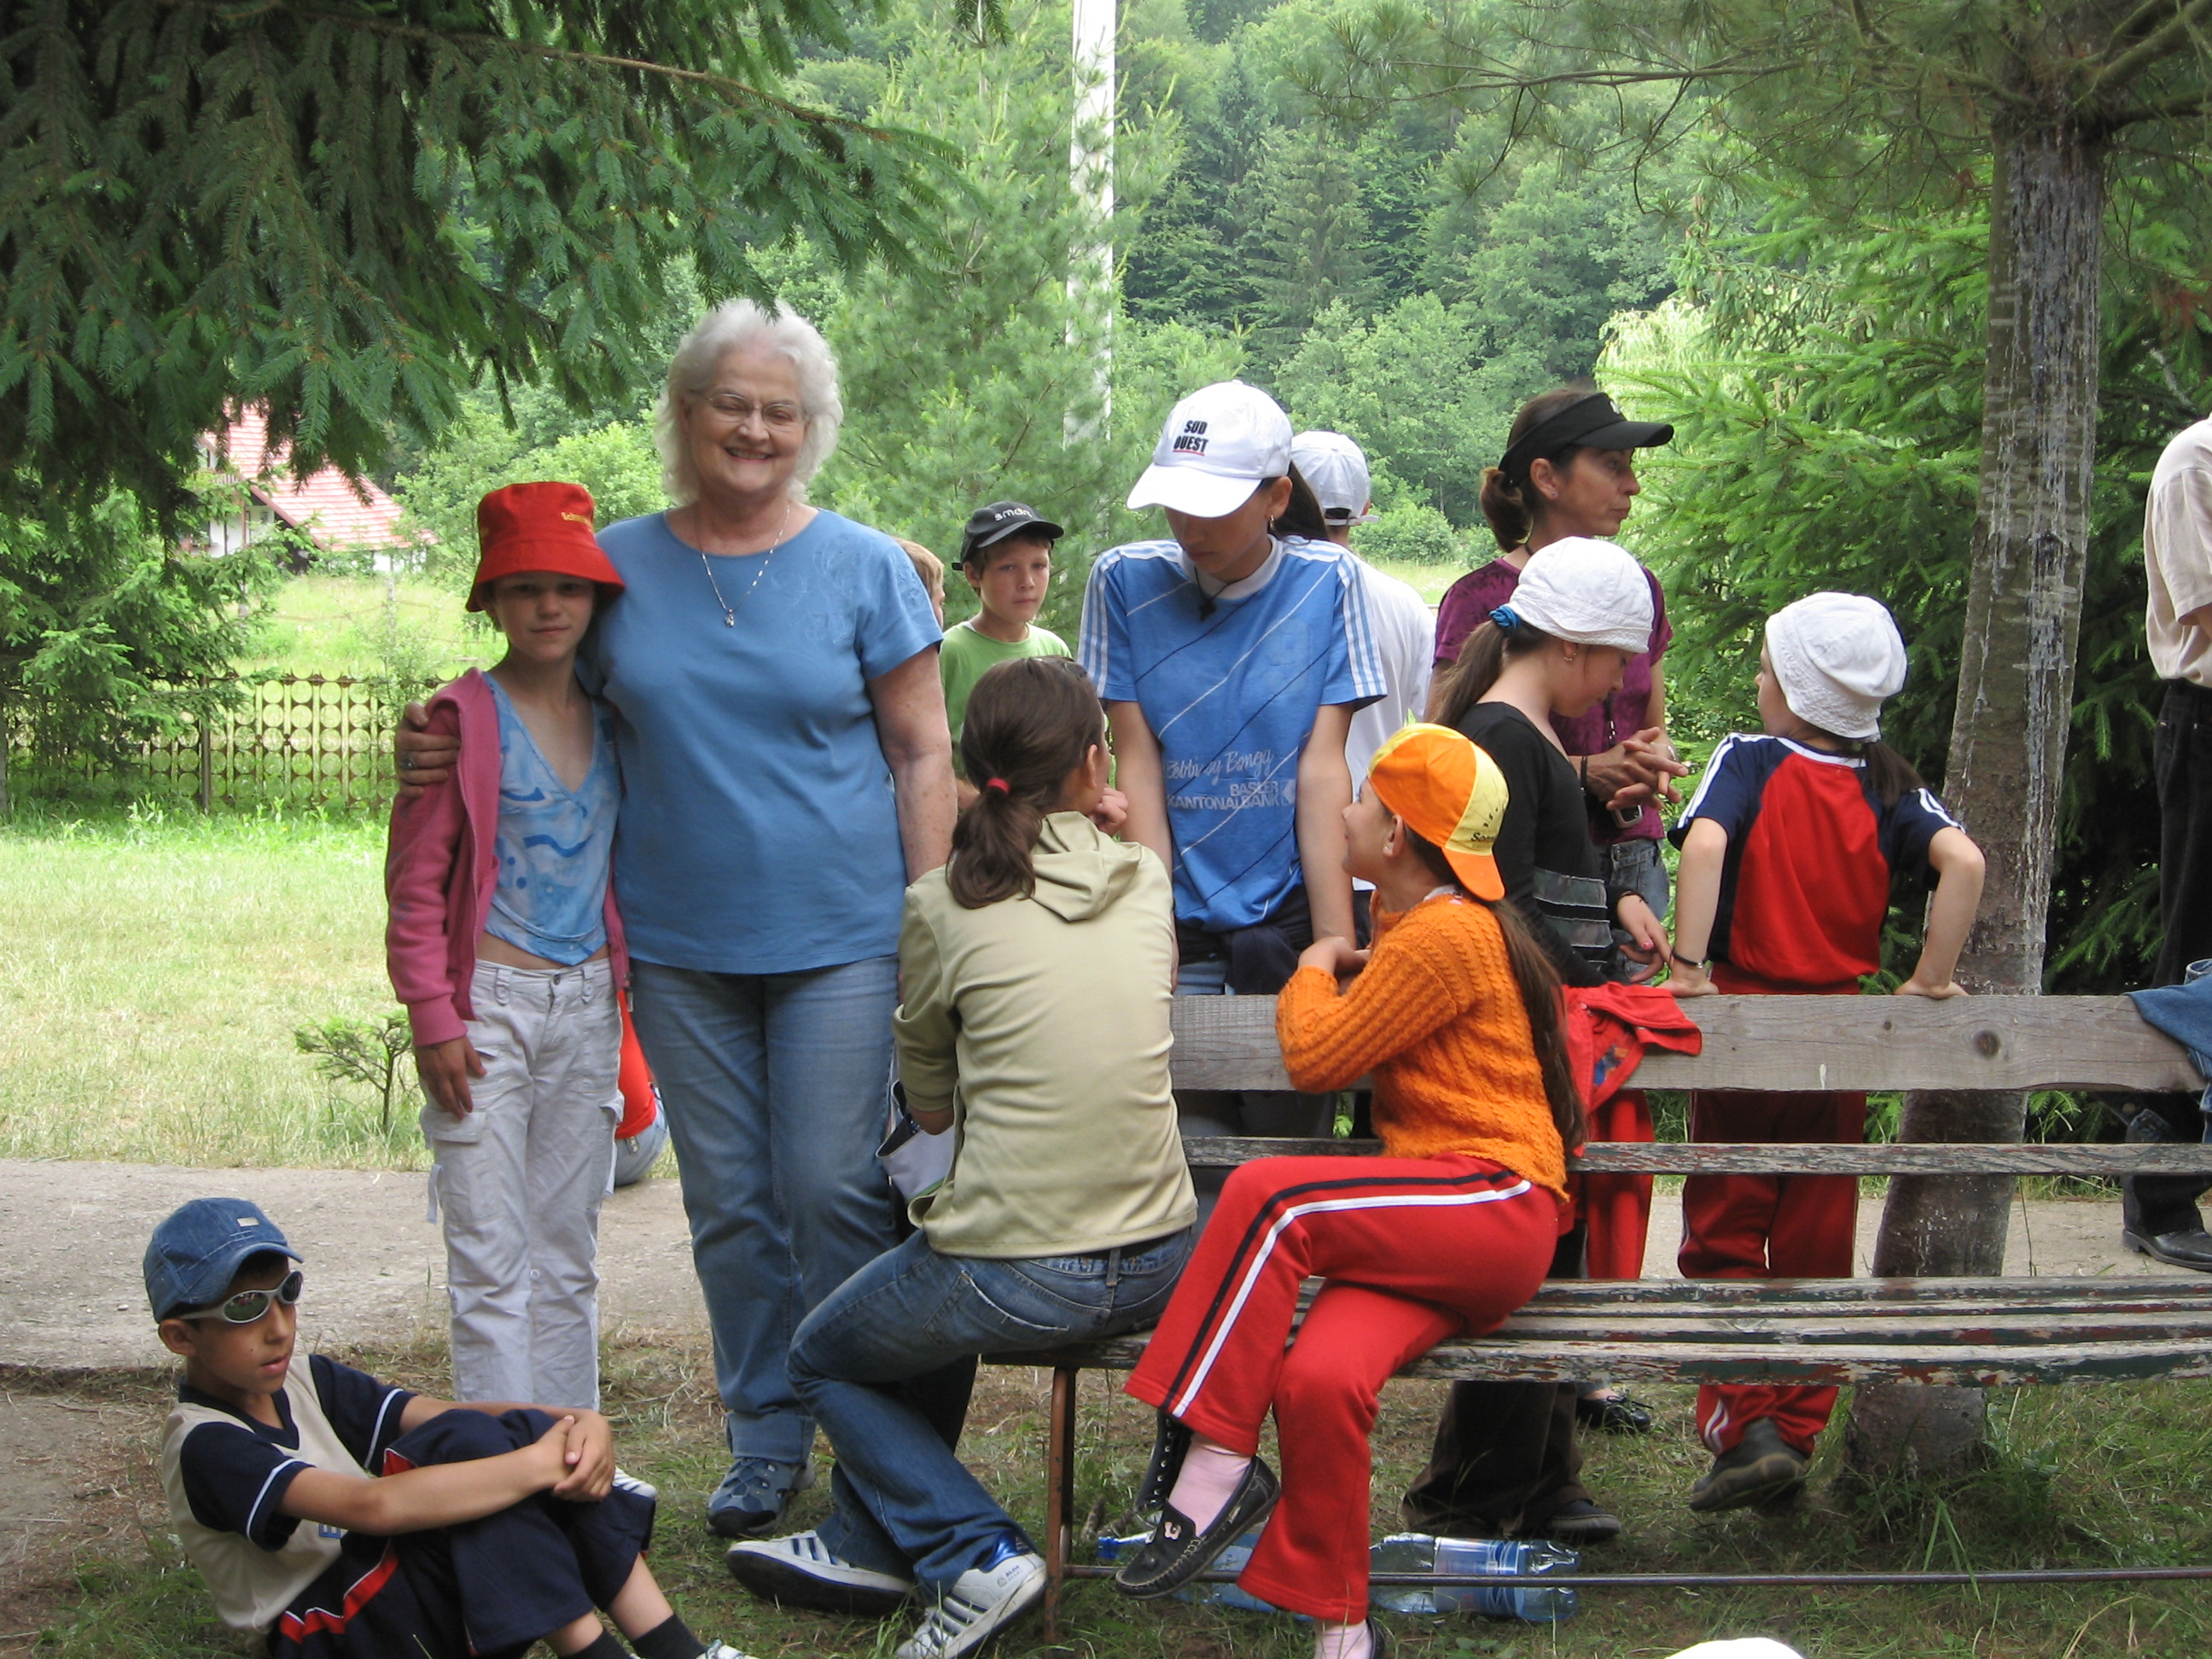 Covasna County Children at '08 Red Cross Camp.  (They wanted to be in the photo, but at the last minute turned their heads!)